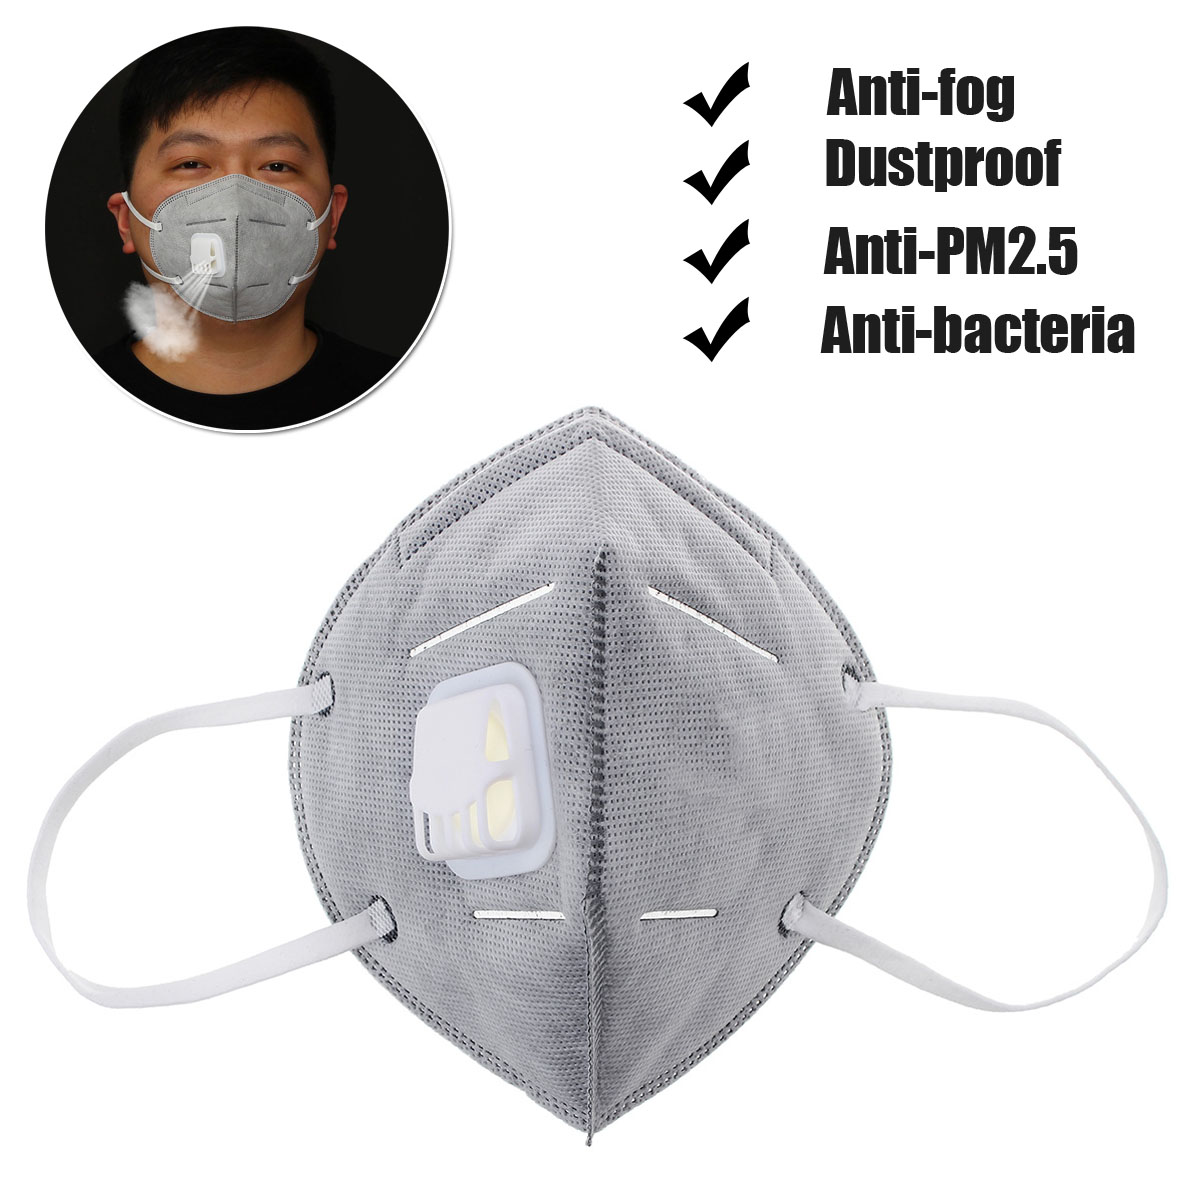 Activated Carbon N95 5 Layer Breathing Valve Mask Dustproof PM2.5 Anti-fog Dustproof Anti-bacteria Anti Fog Respirator